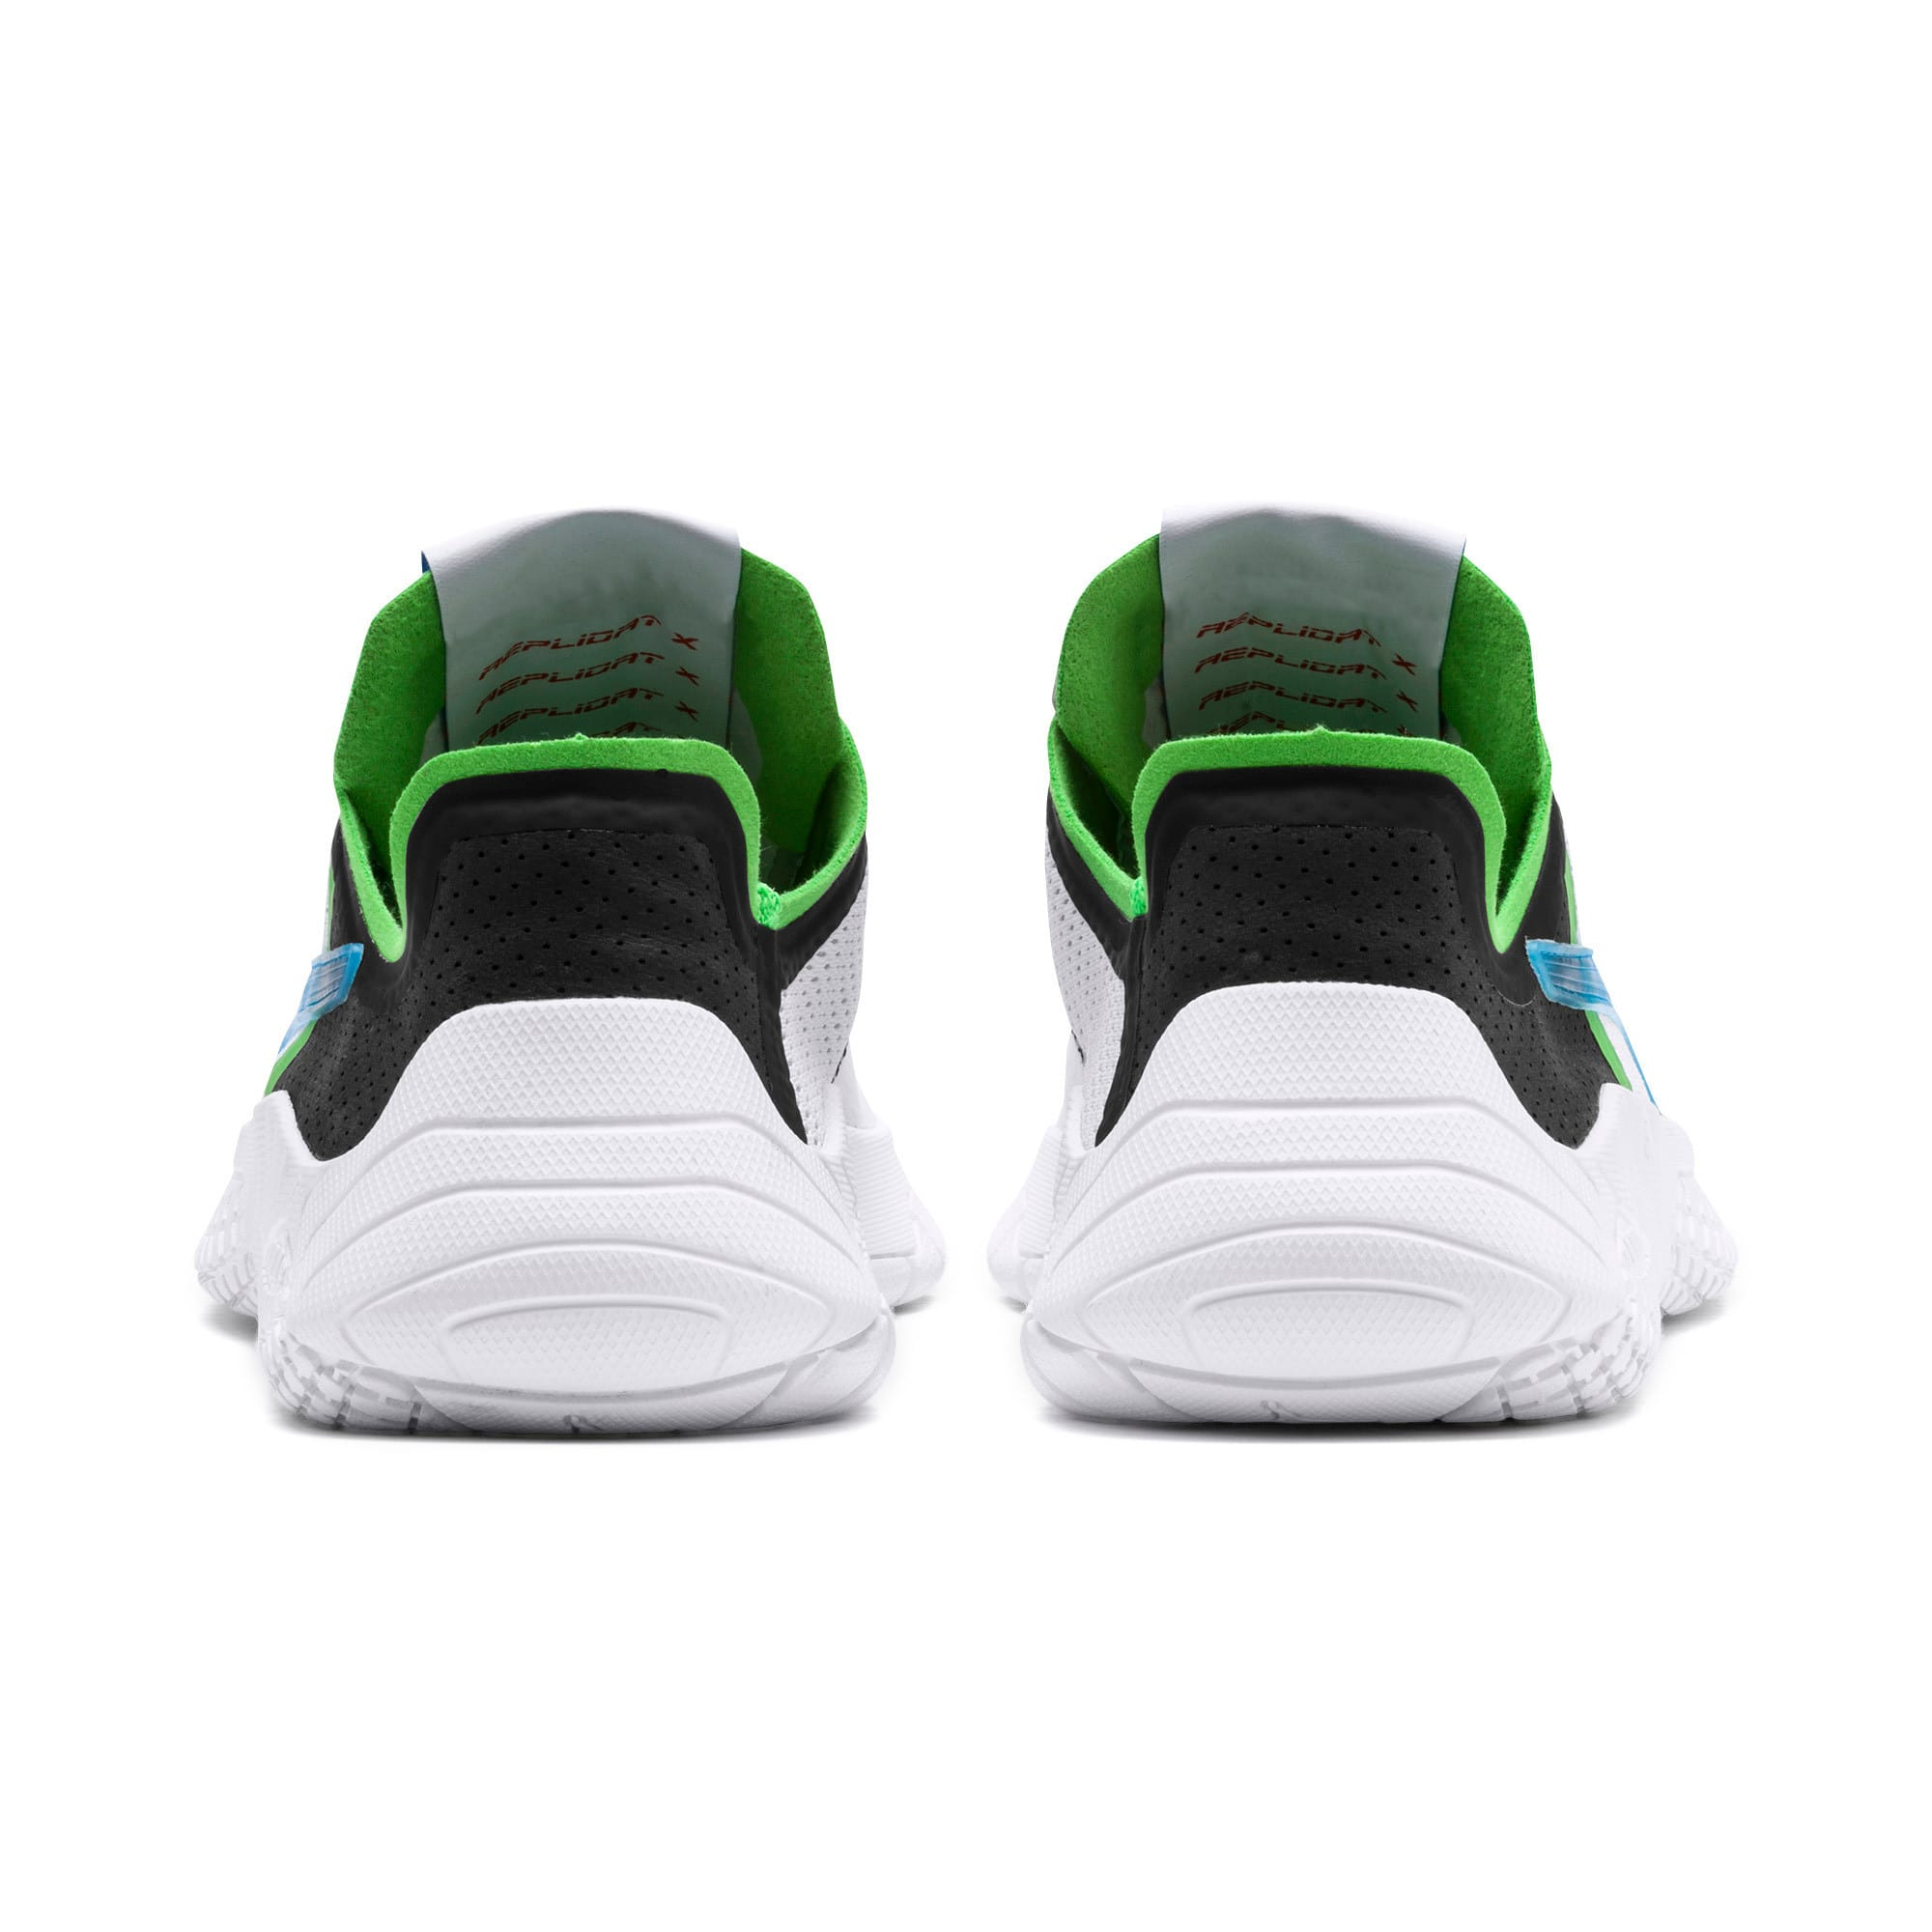 Thumbnail 4 of Pirelli Replicat-X Trainers, White-Black-Classic Green, medium